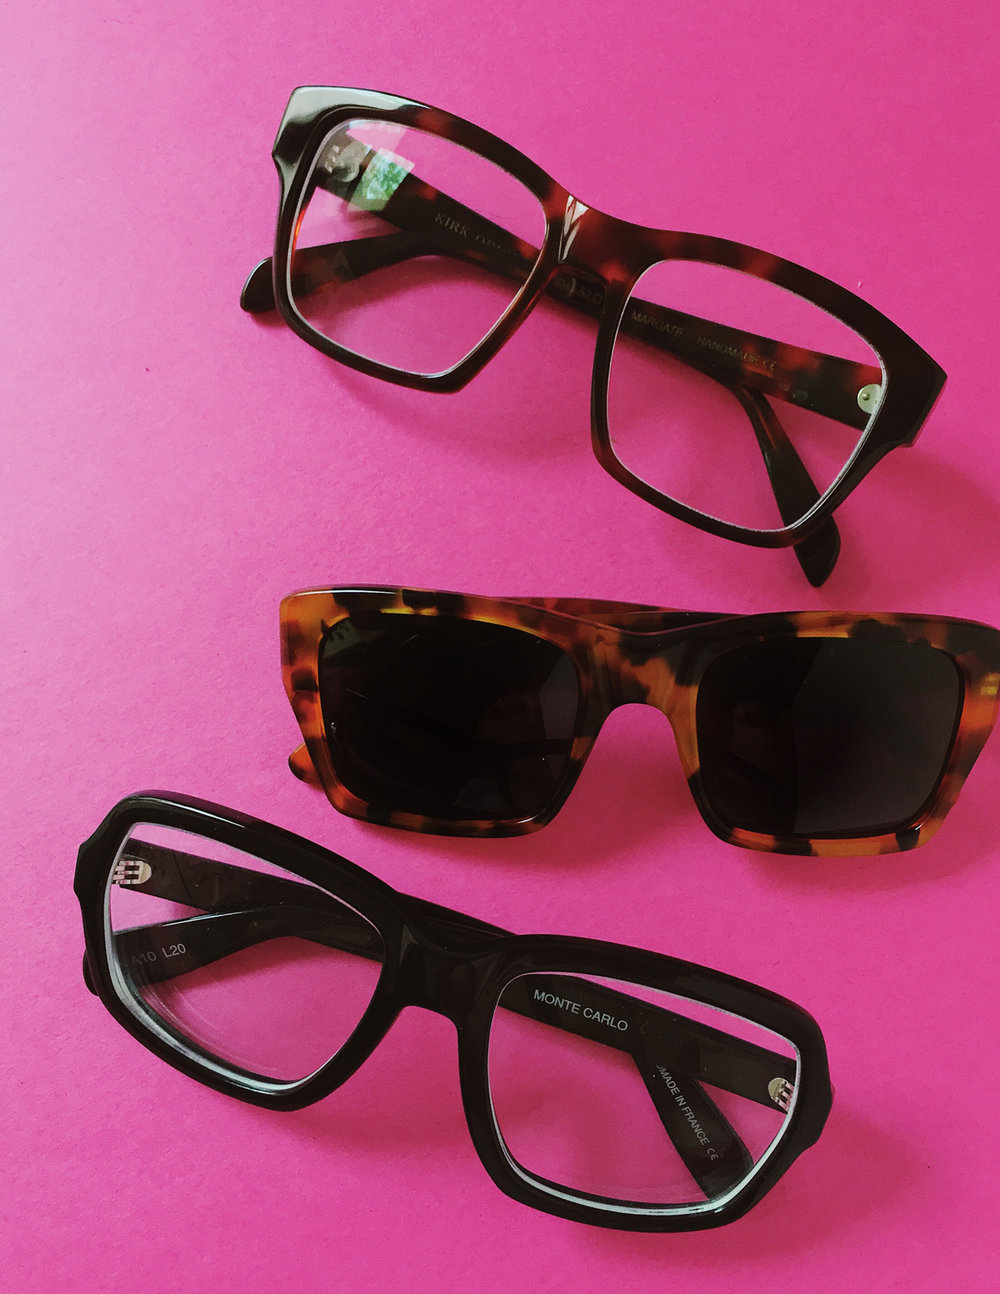 Margate optical  ($302), archival tortoise sunglass, and  Monte Carlo  optical ($262).